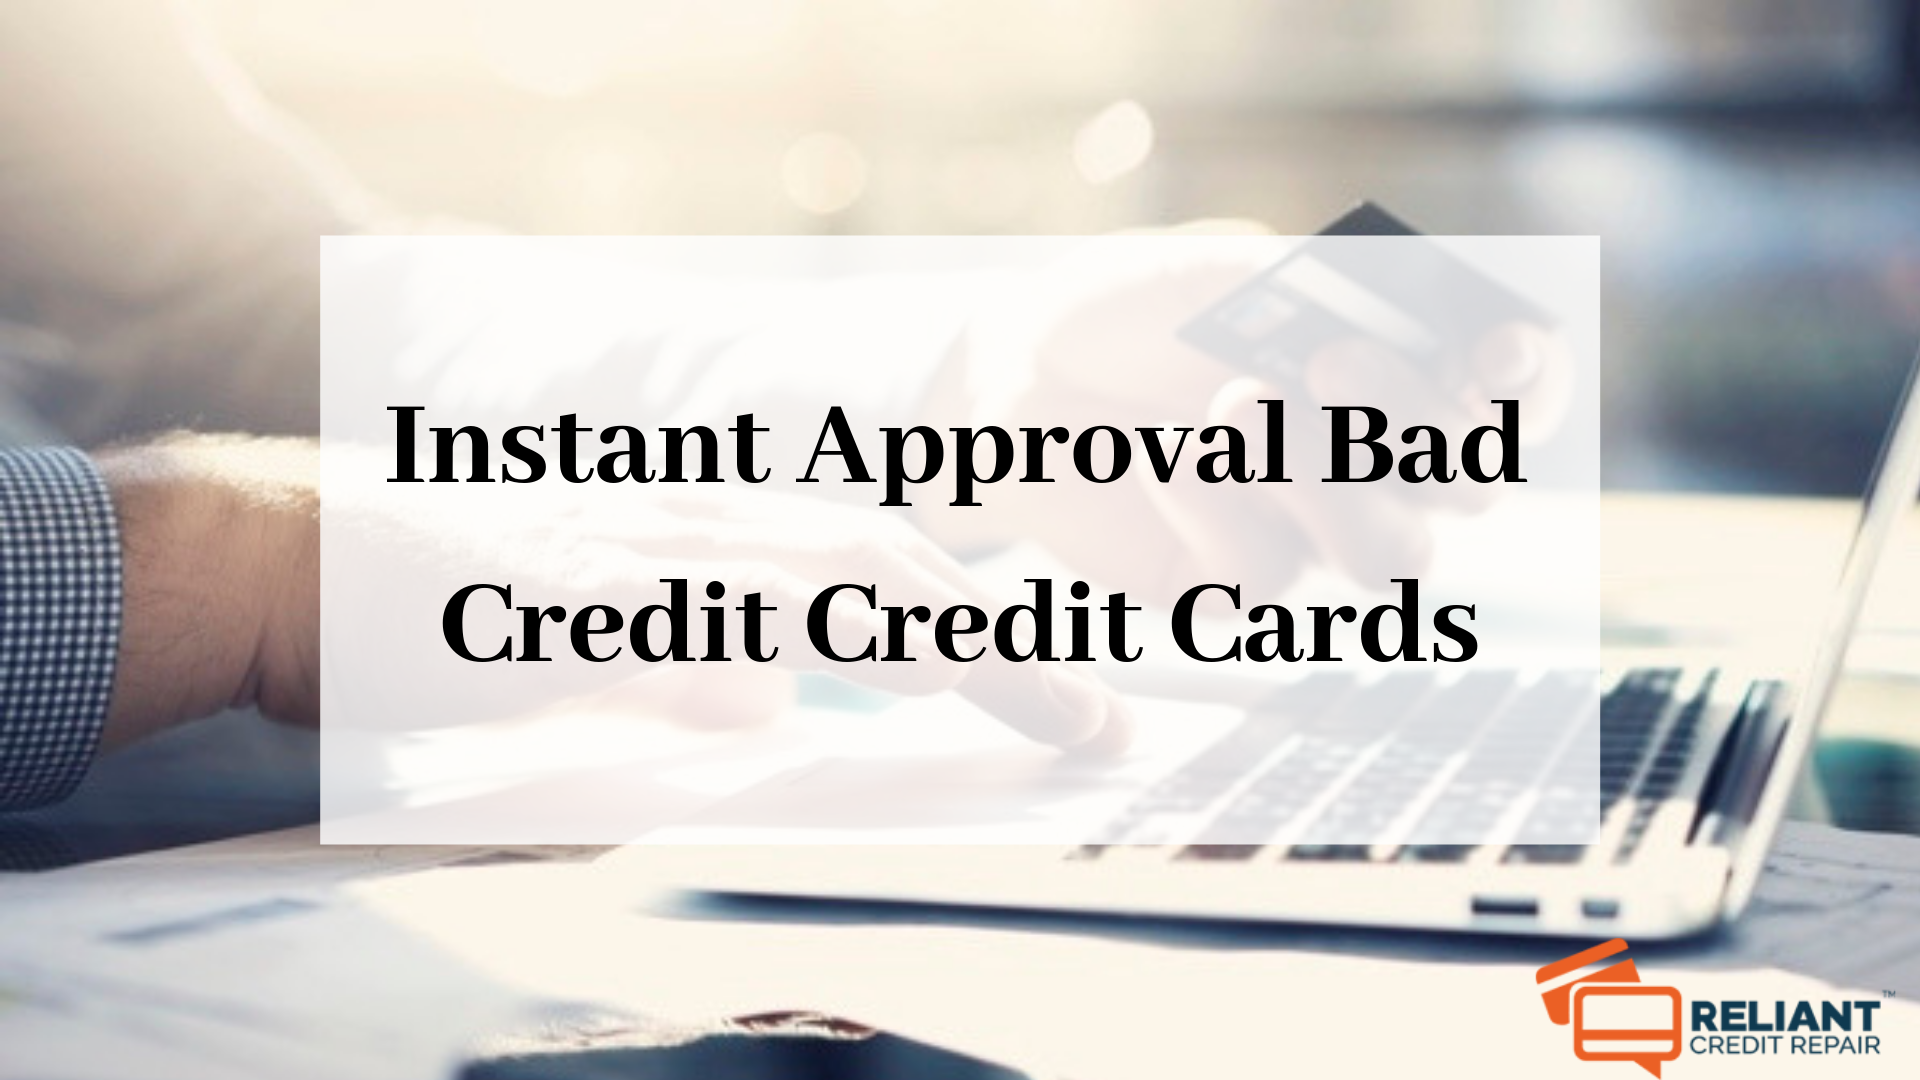 Instant Approval Bad Credit Credit Cards - 3 Ways To ...